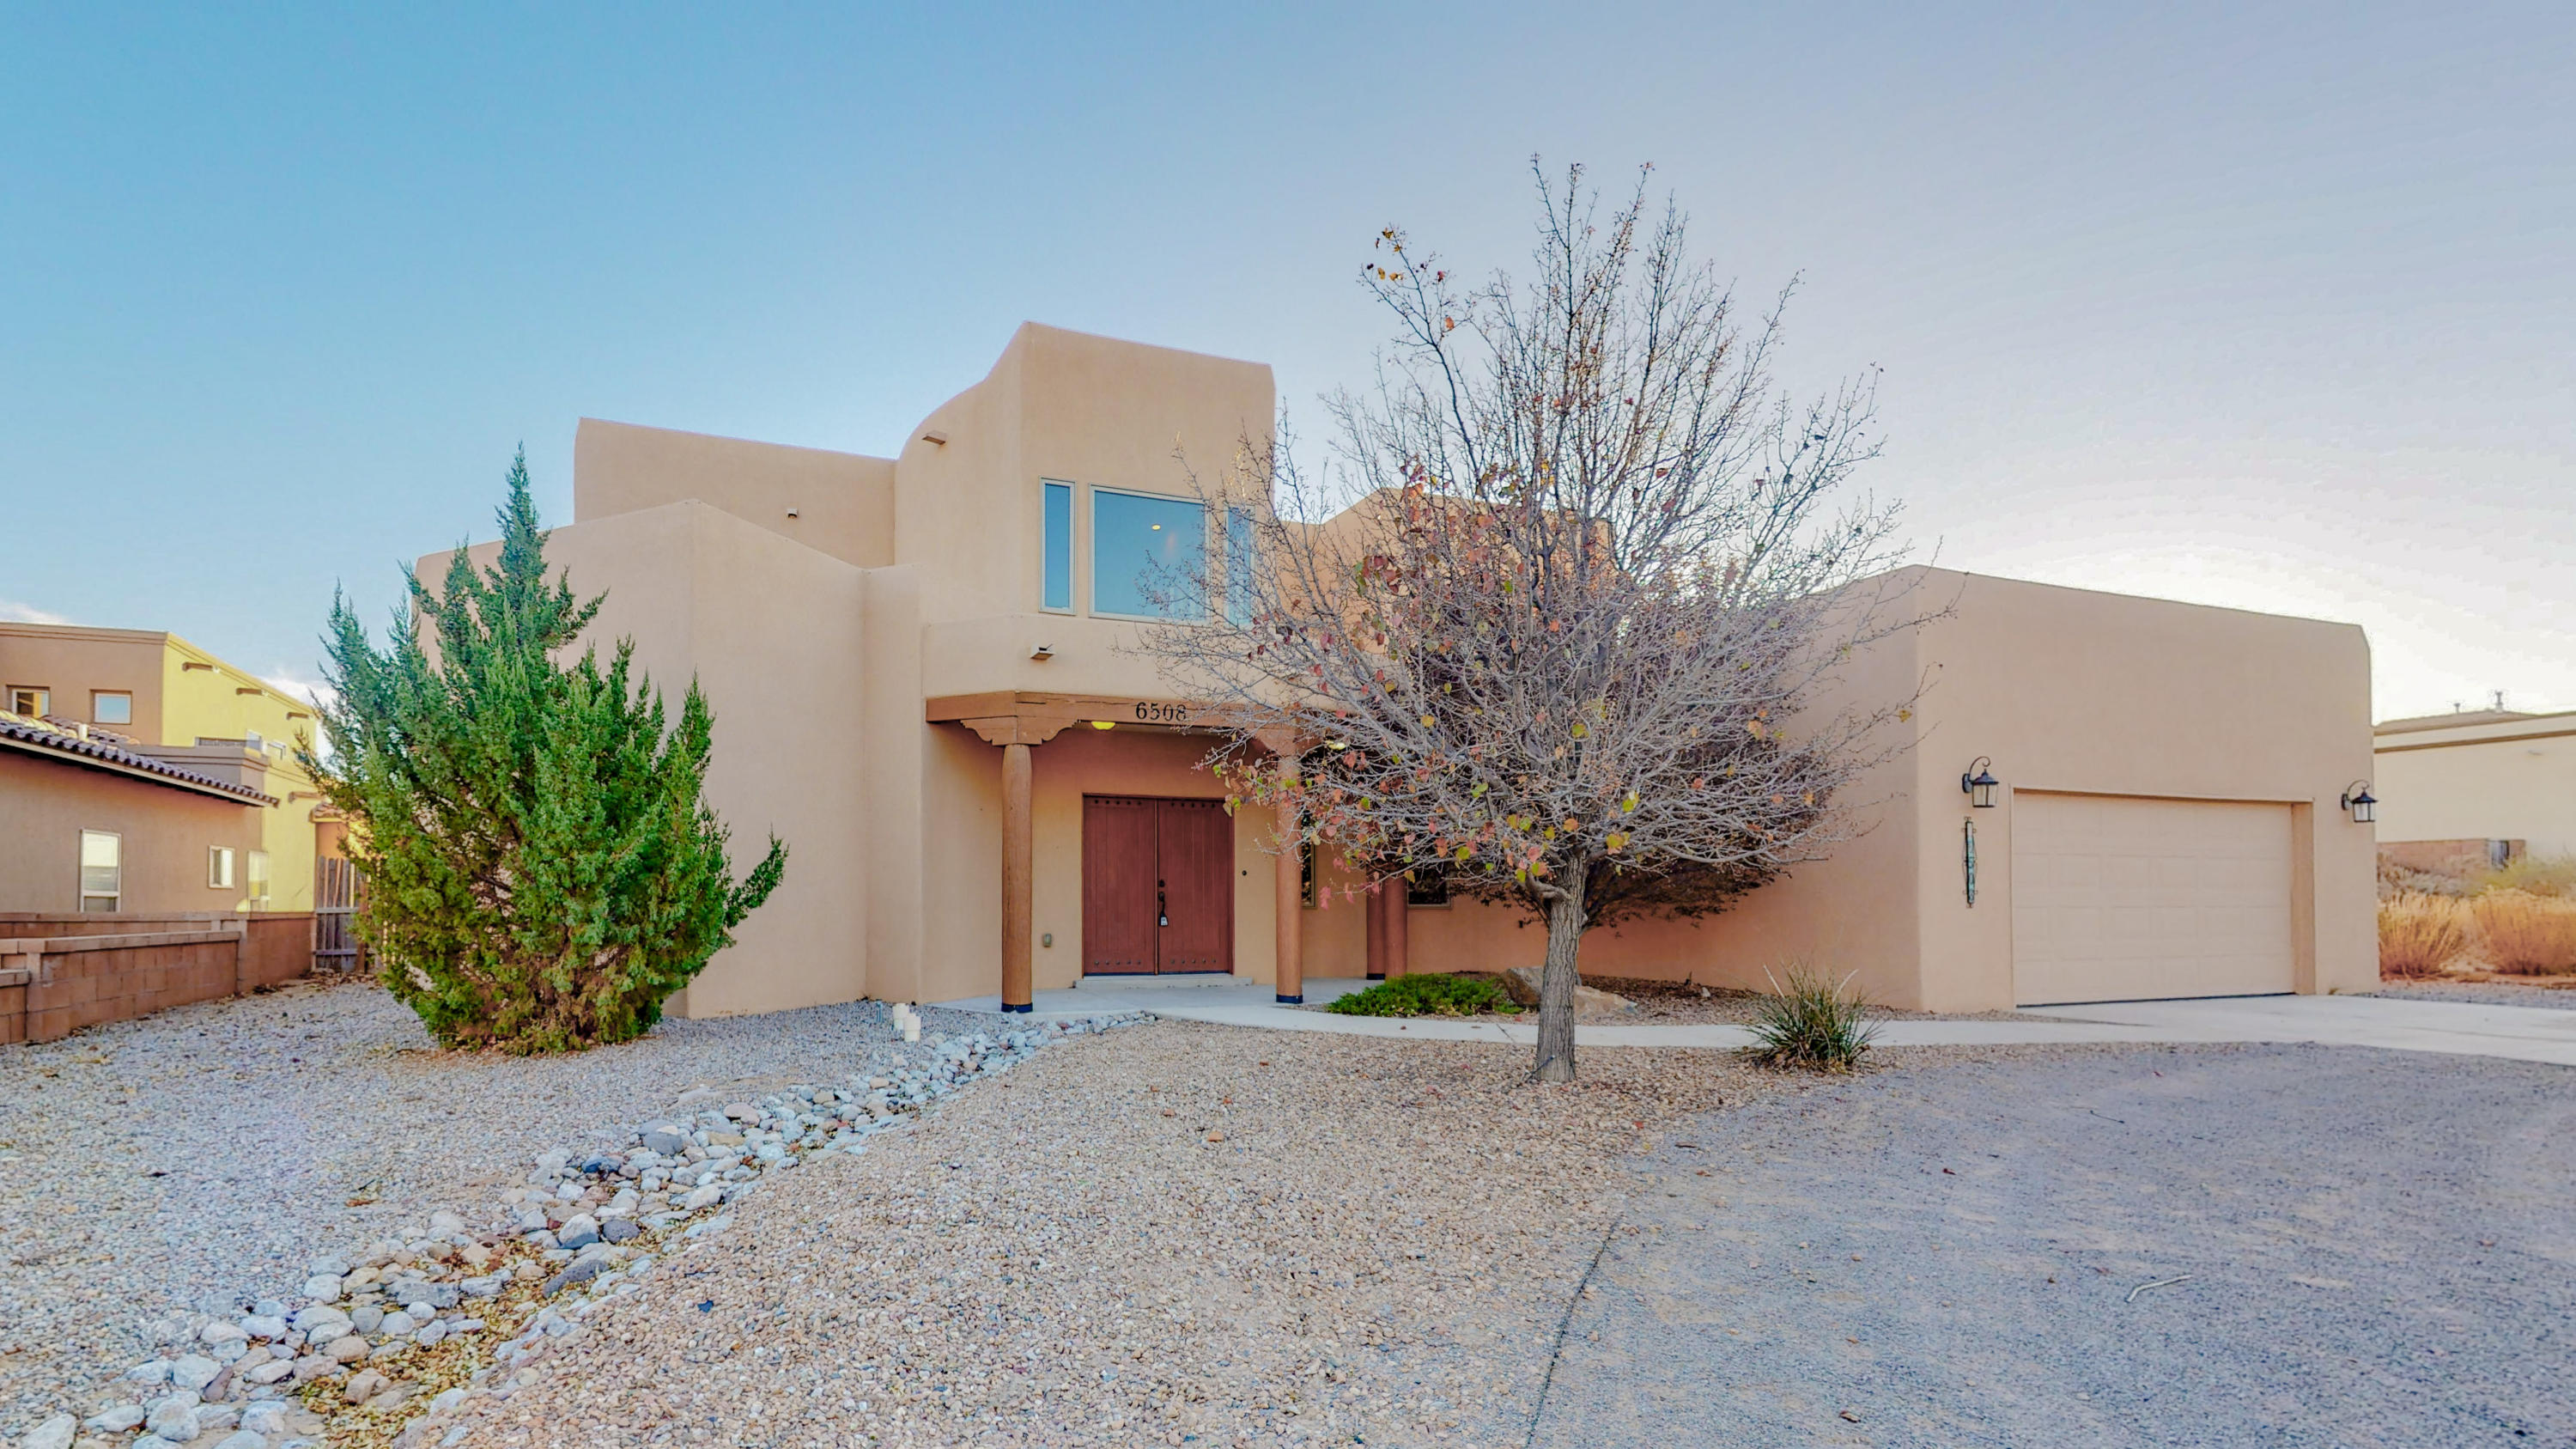 Beautiful custom home just became available for sale in the Vista Entrada area of Rio Rancho, NM. Features include: **NEW PAINT AND CARPET THROUGHOUT**Open Living Area with Fireplace**Master Bedroom and Den Downstairs**Loft and 3 Bedrooms/2 Bathrooms Upstairs**Jack & Jill Bathroom**Real Wood Doors Throughout**Dual Zone Refrigerated Air Conditioning**Balcony Upstairs**Large Covered Patio**3 Car Garage (Tandem Bay)**Epoxy Garage Floor**Large 1/2 Acre Lot**Close to Schools, New Shopping Centers and Restaurants**